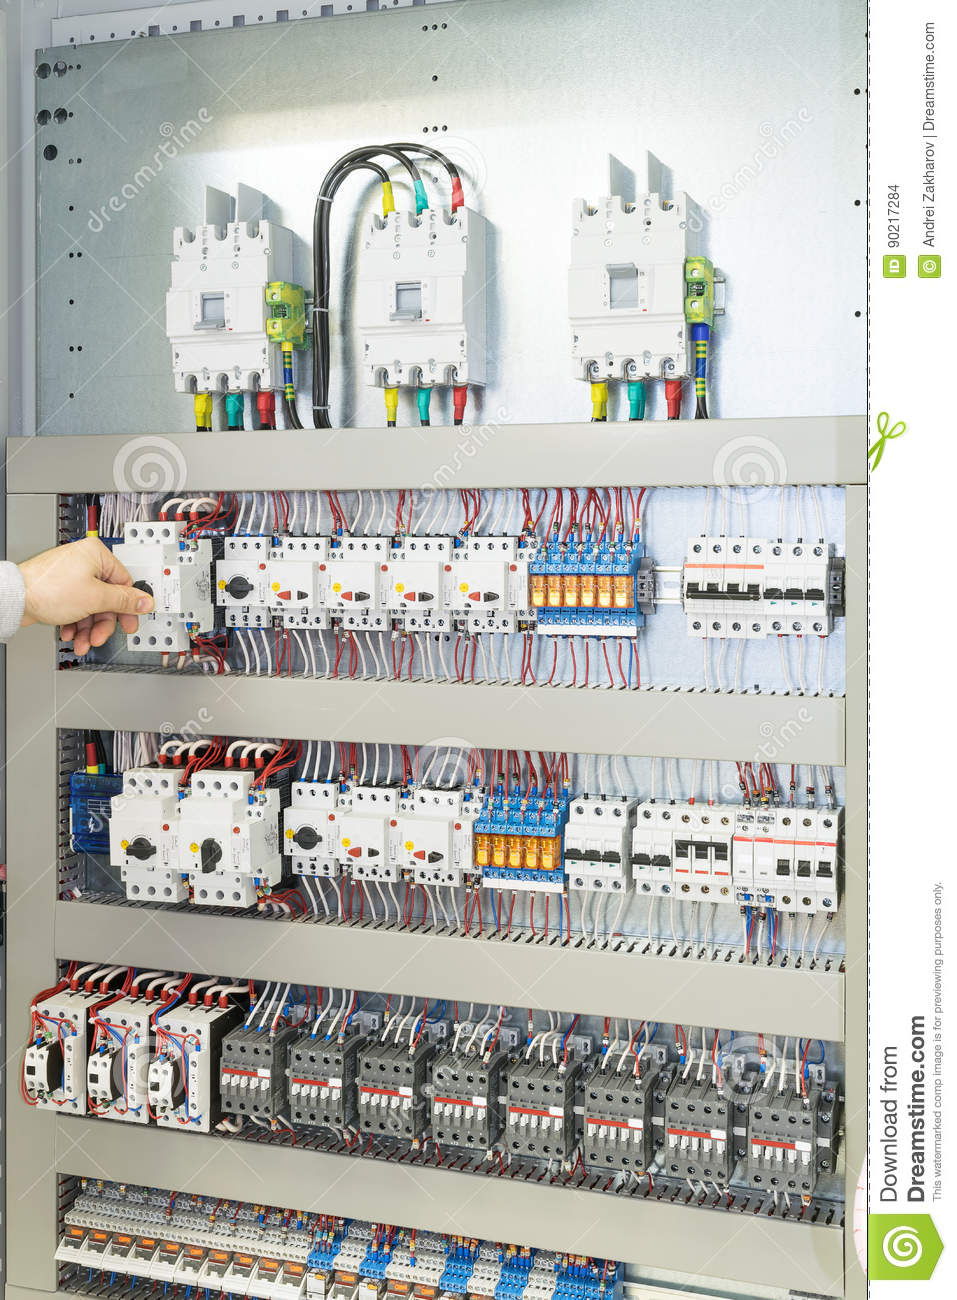 Circuit Breaker Cabinet Man Turns Off The Circuit Breaker Protecting The Motor Stock